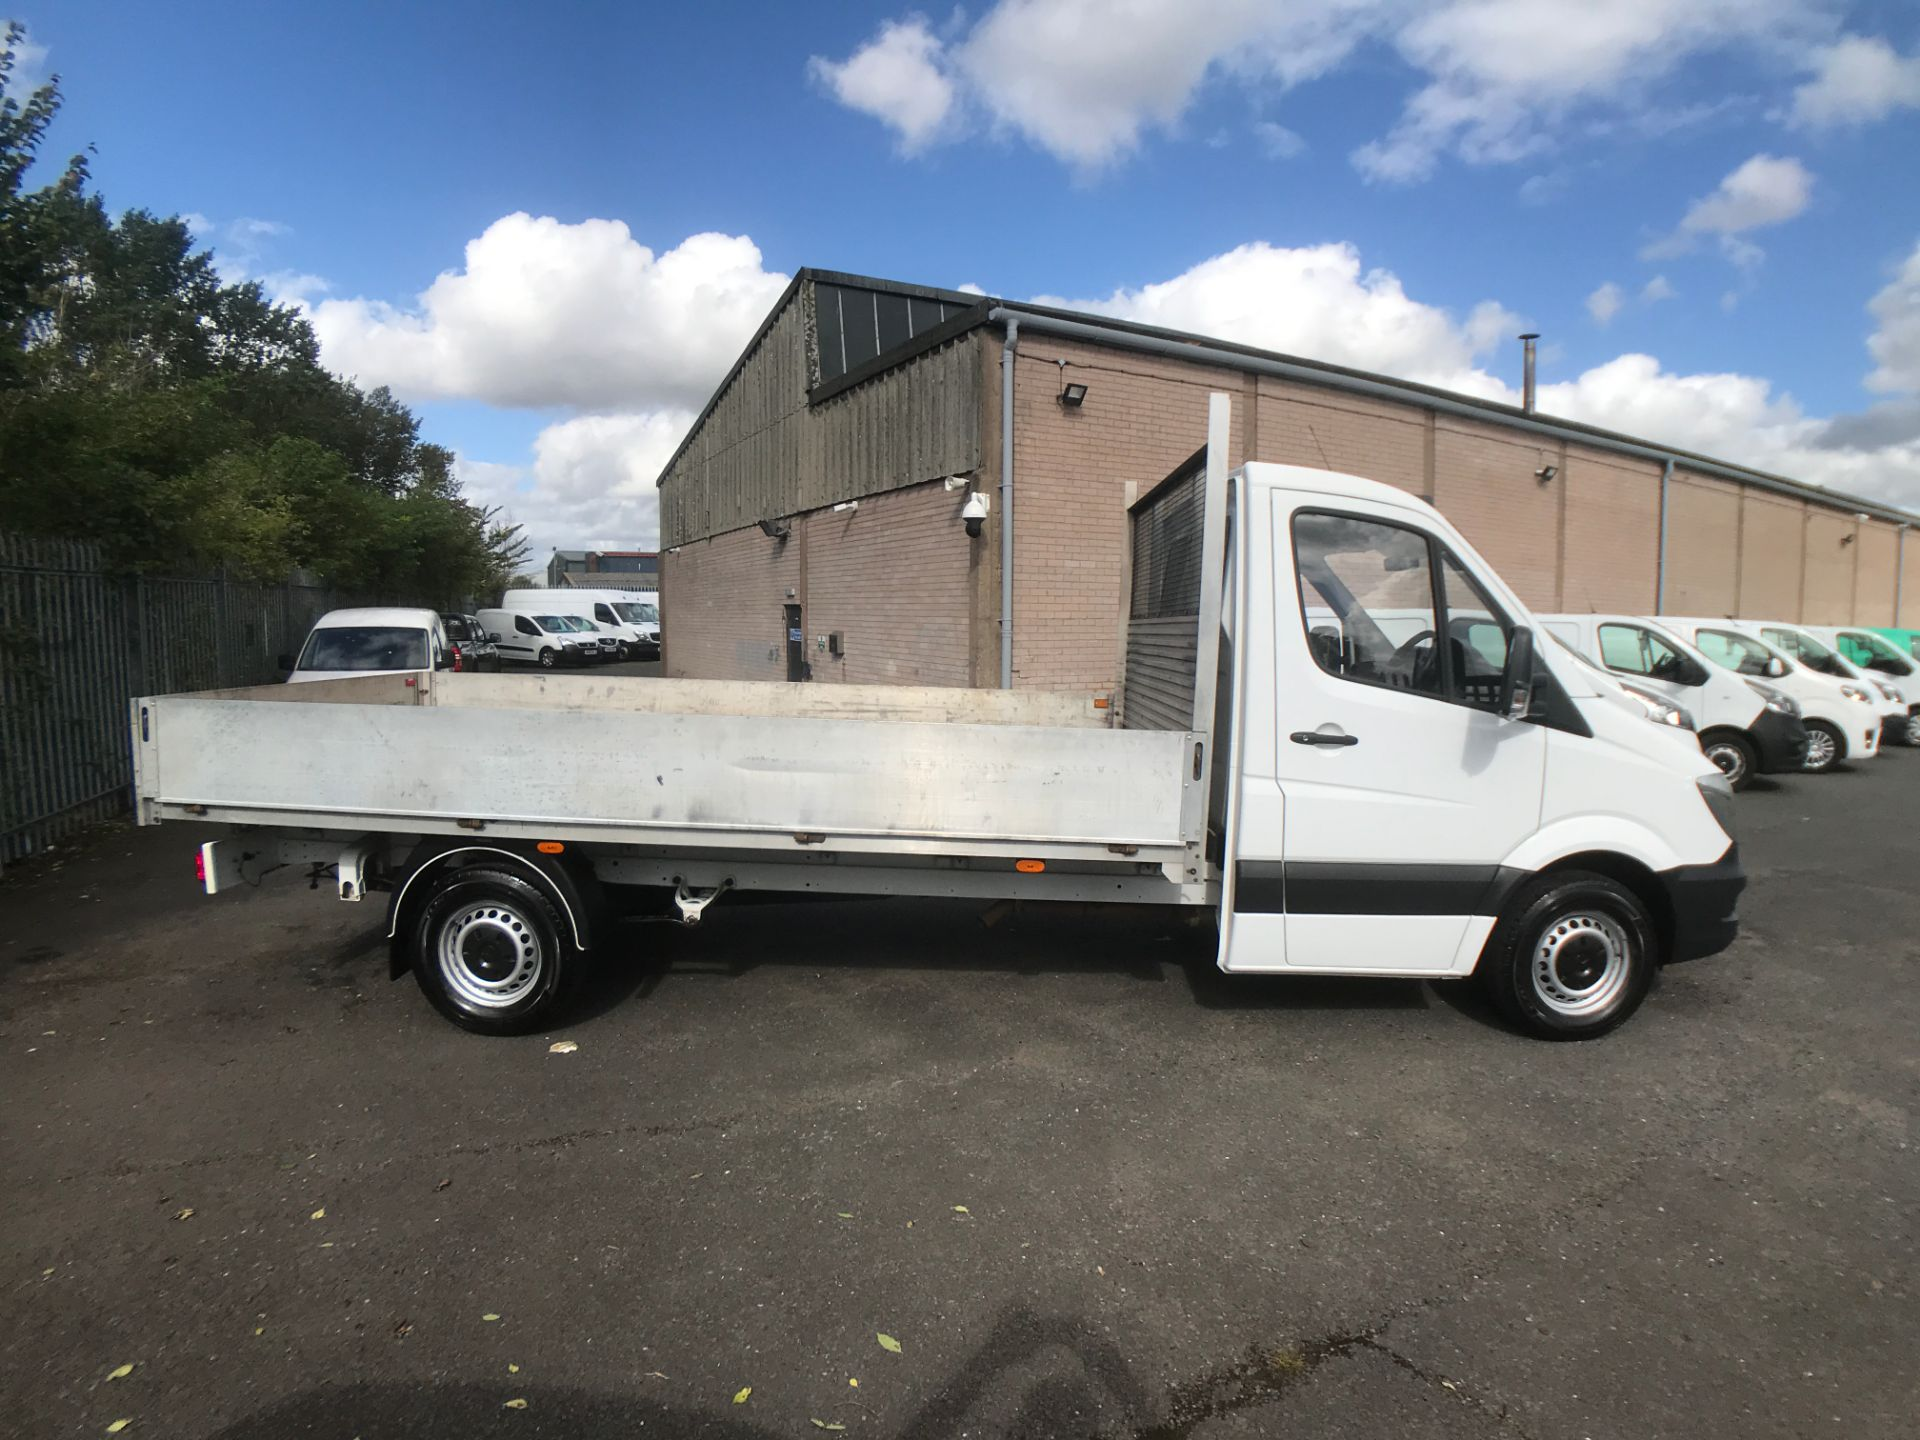 2017 Mercedes-Benz Sprinter 314CDI 13FT DROPSIDE 140PS EURO 6 (KM17FPU) Image 7